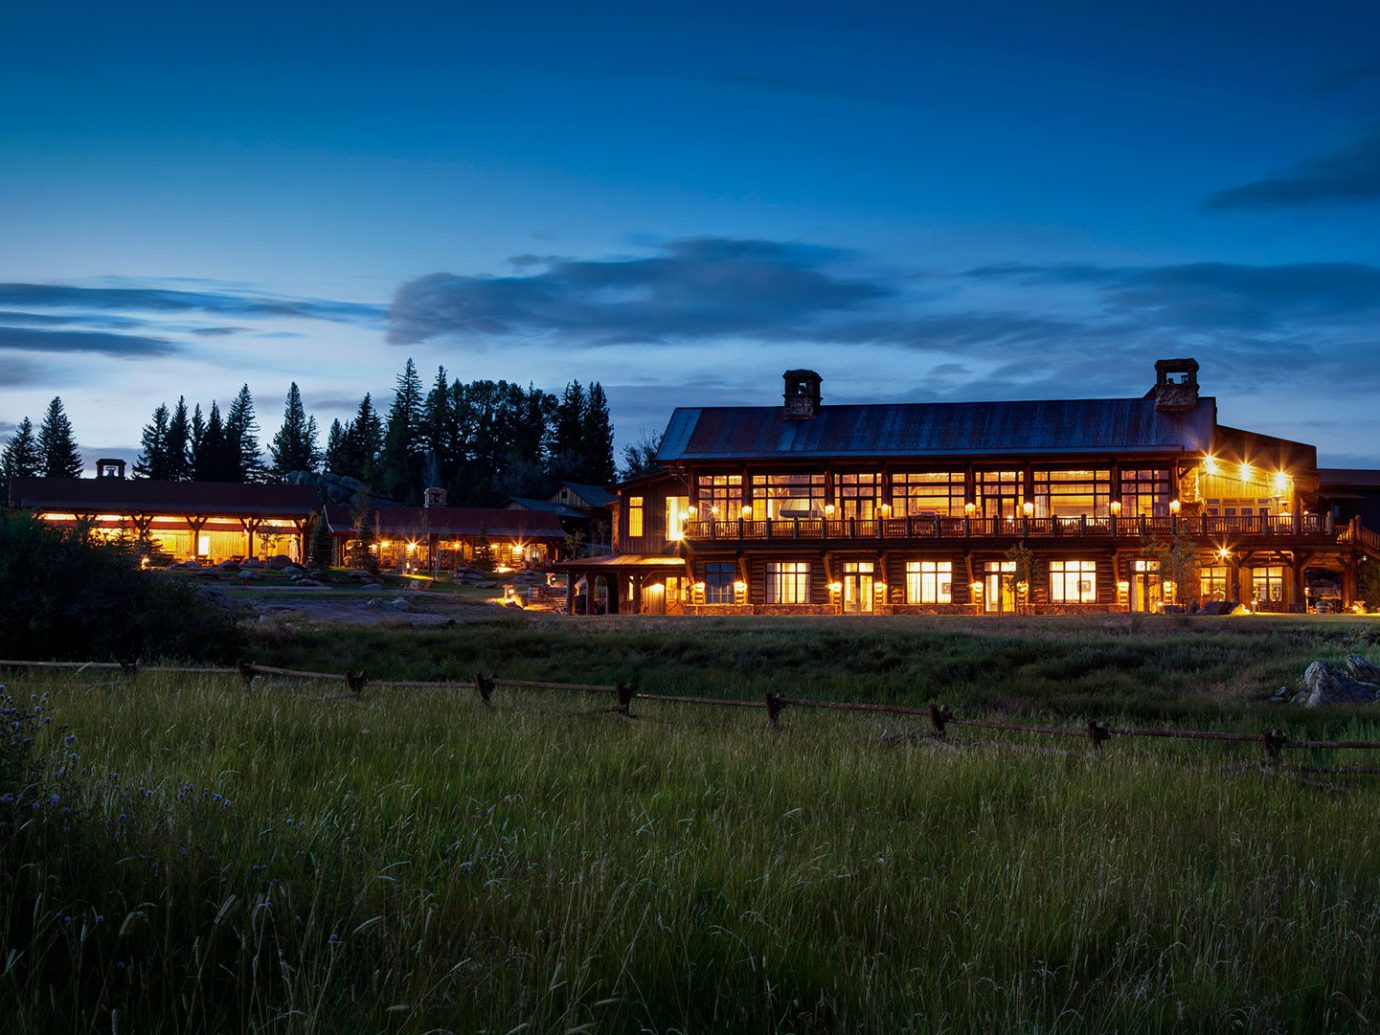 Cabin calm dusk Exterior Forest isolation Lodge log cabin Luxury Nature night night lights Outdoors remote Rustic serene trees Trip Ideas woods outdoor sky grass landmark horizon reflection evening morning Sunset cloud landscape rural area cityscape dawn panorama distance